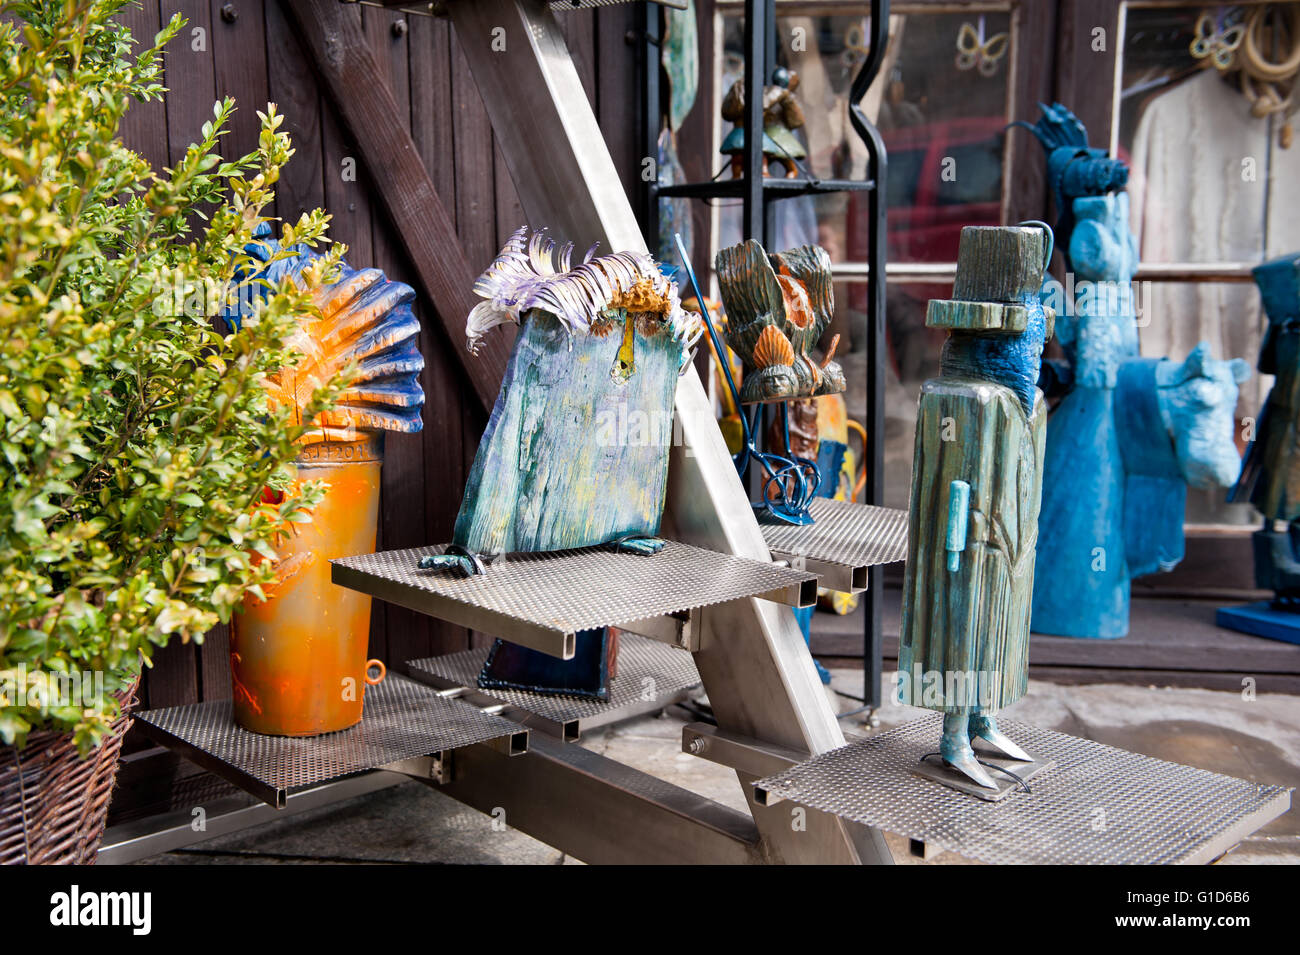 Wooden carved funny art figures in shop exterior in Kazimierz Dolny, Poland, Europe, bohemian tourist travel destination, - Stock Image